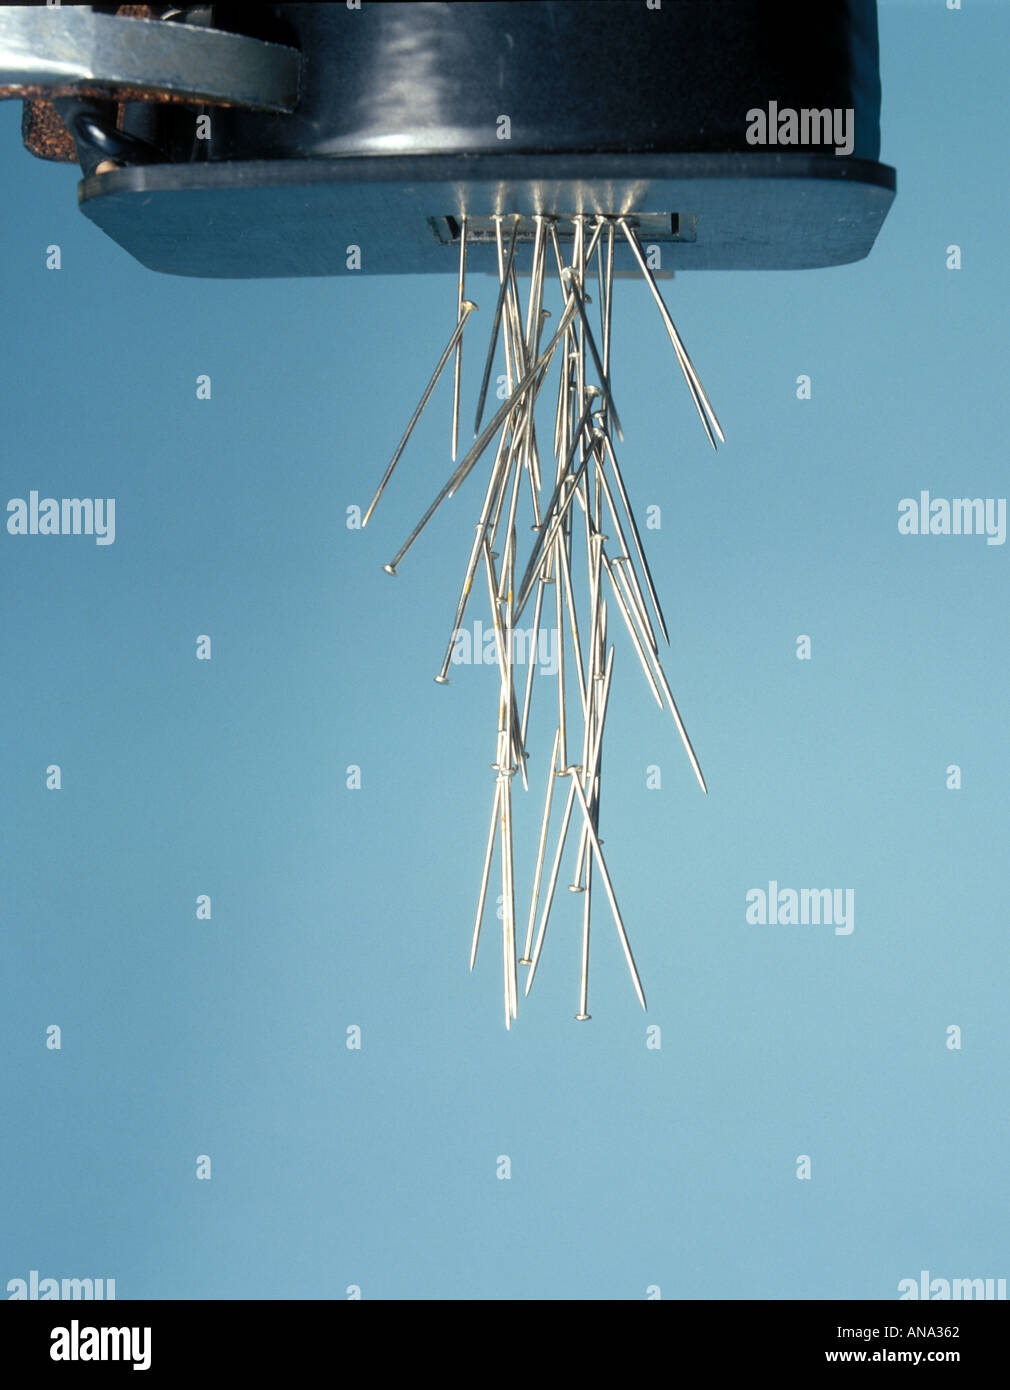 steel pins attracted to an electromagnet - Stock Image